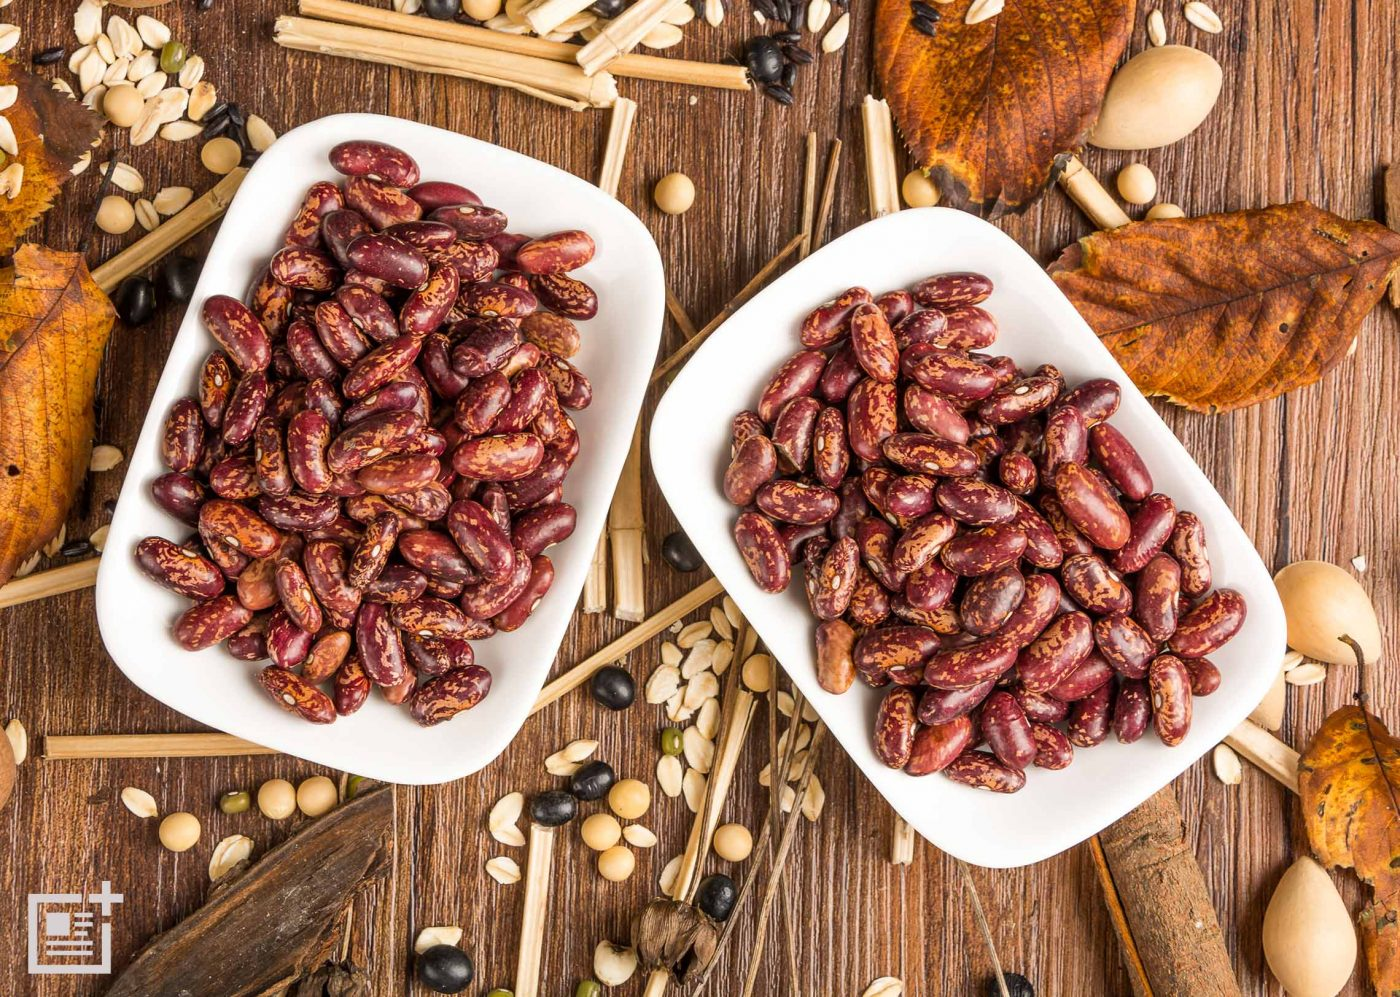 Coumest Phytoestrogens